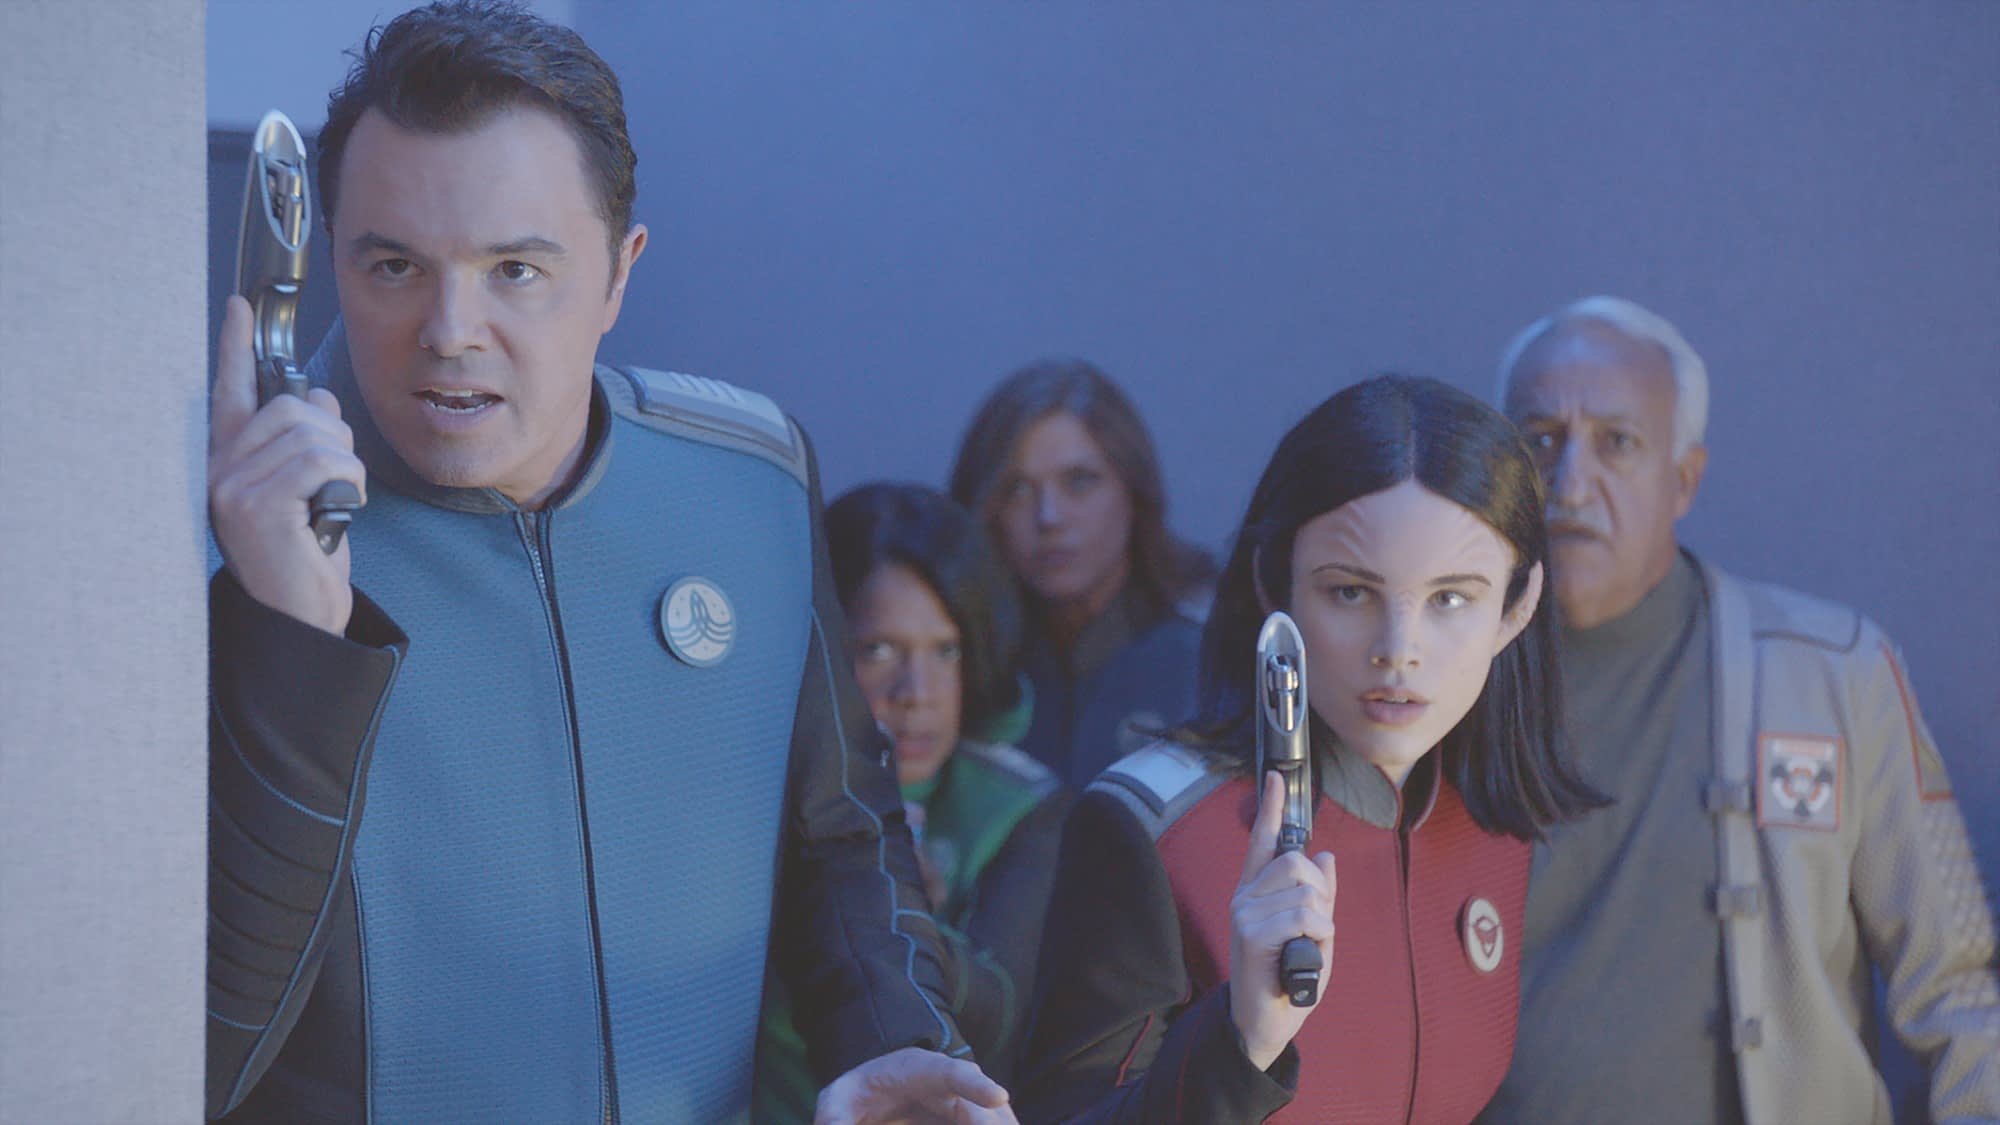 THE ORVILLE: L-R: Seth MacFarlane, Penny Johnson Jerald, Adrianne Palicki, Halston Sage and guest star Brian George in THE ORVILLE premiering this fall on FOX. ©2017 Fox Broadcasting Co. Cr: FOX